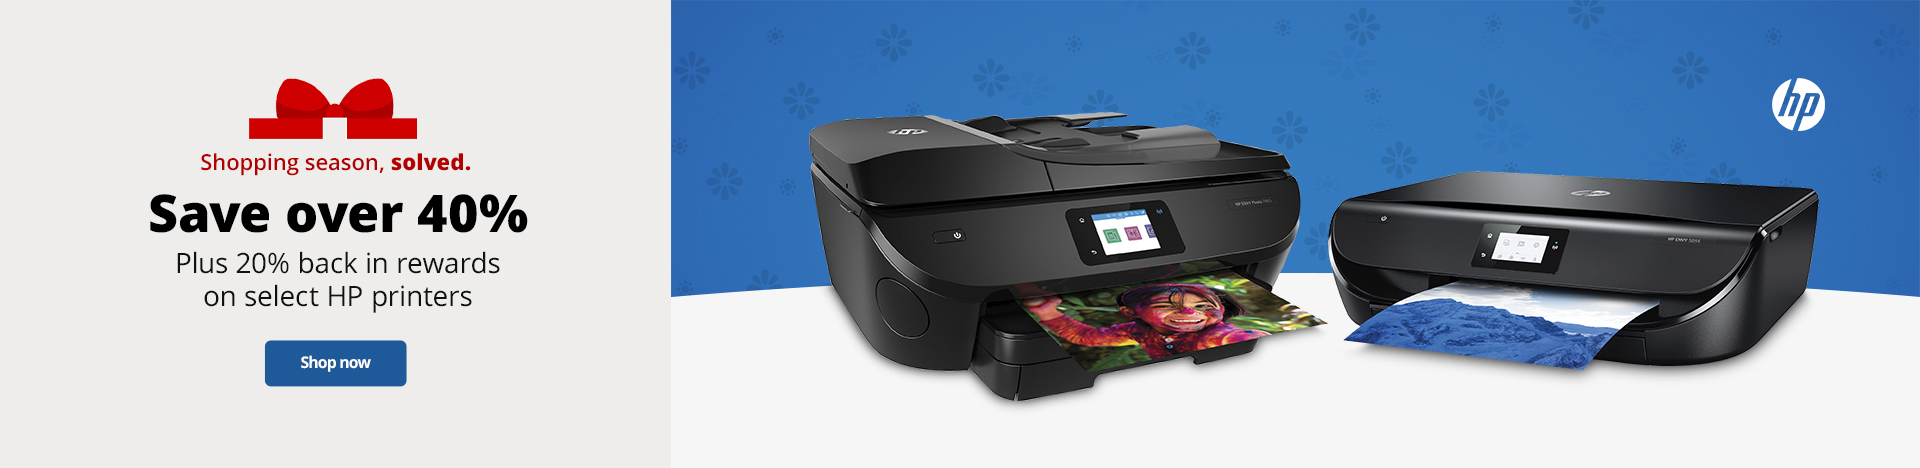 Save Over 40% off select Plus 20% back in rewards on select HP printers